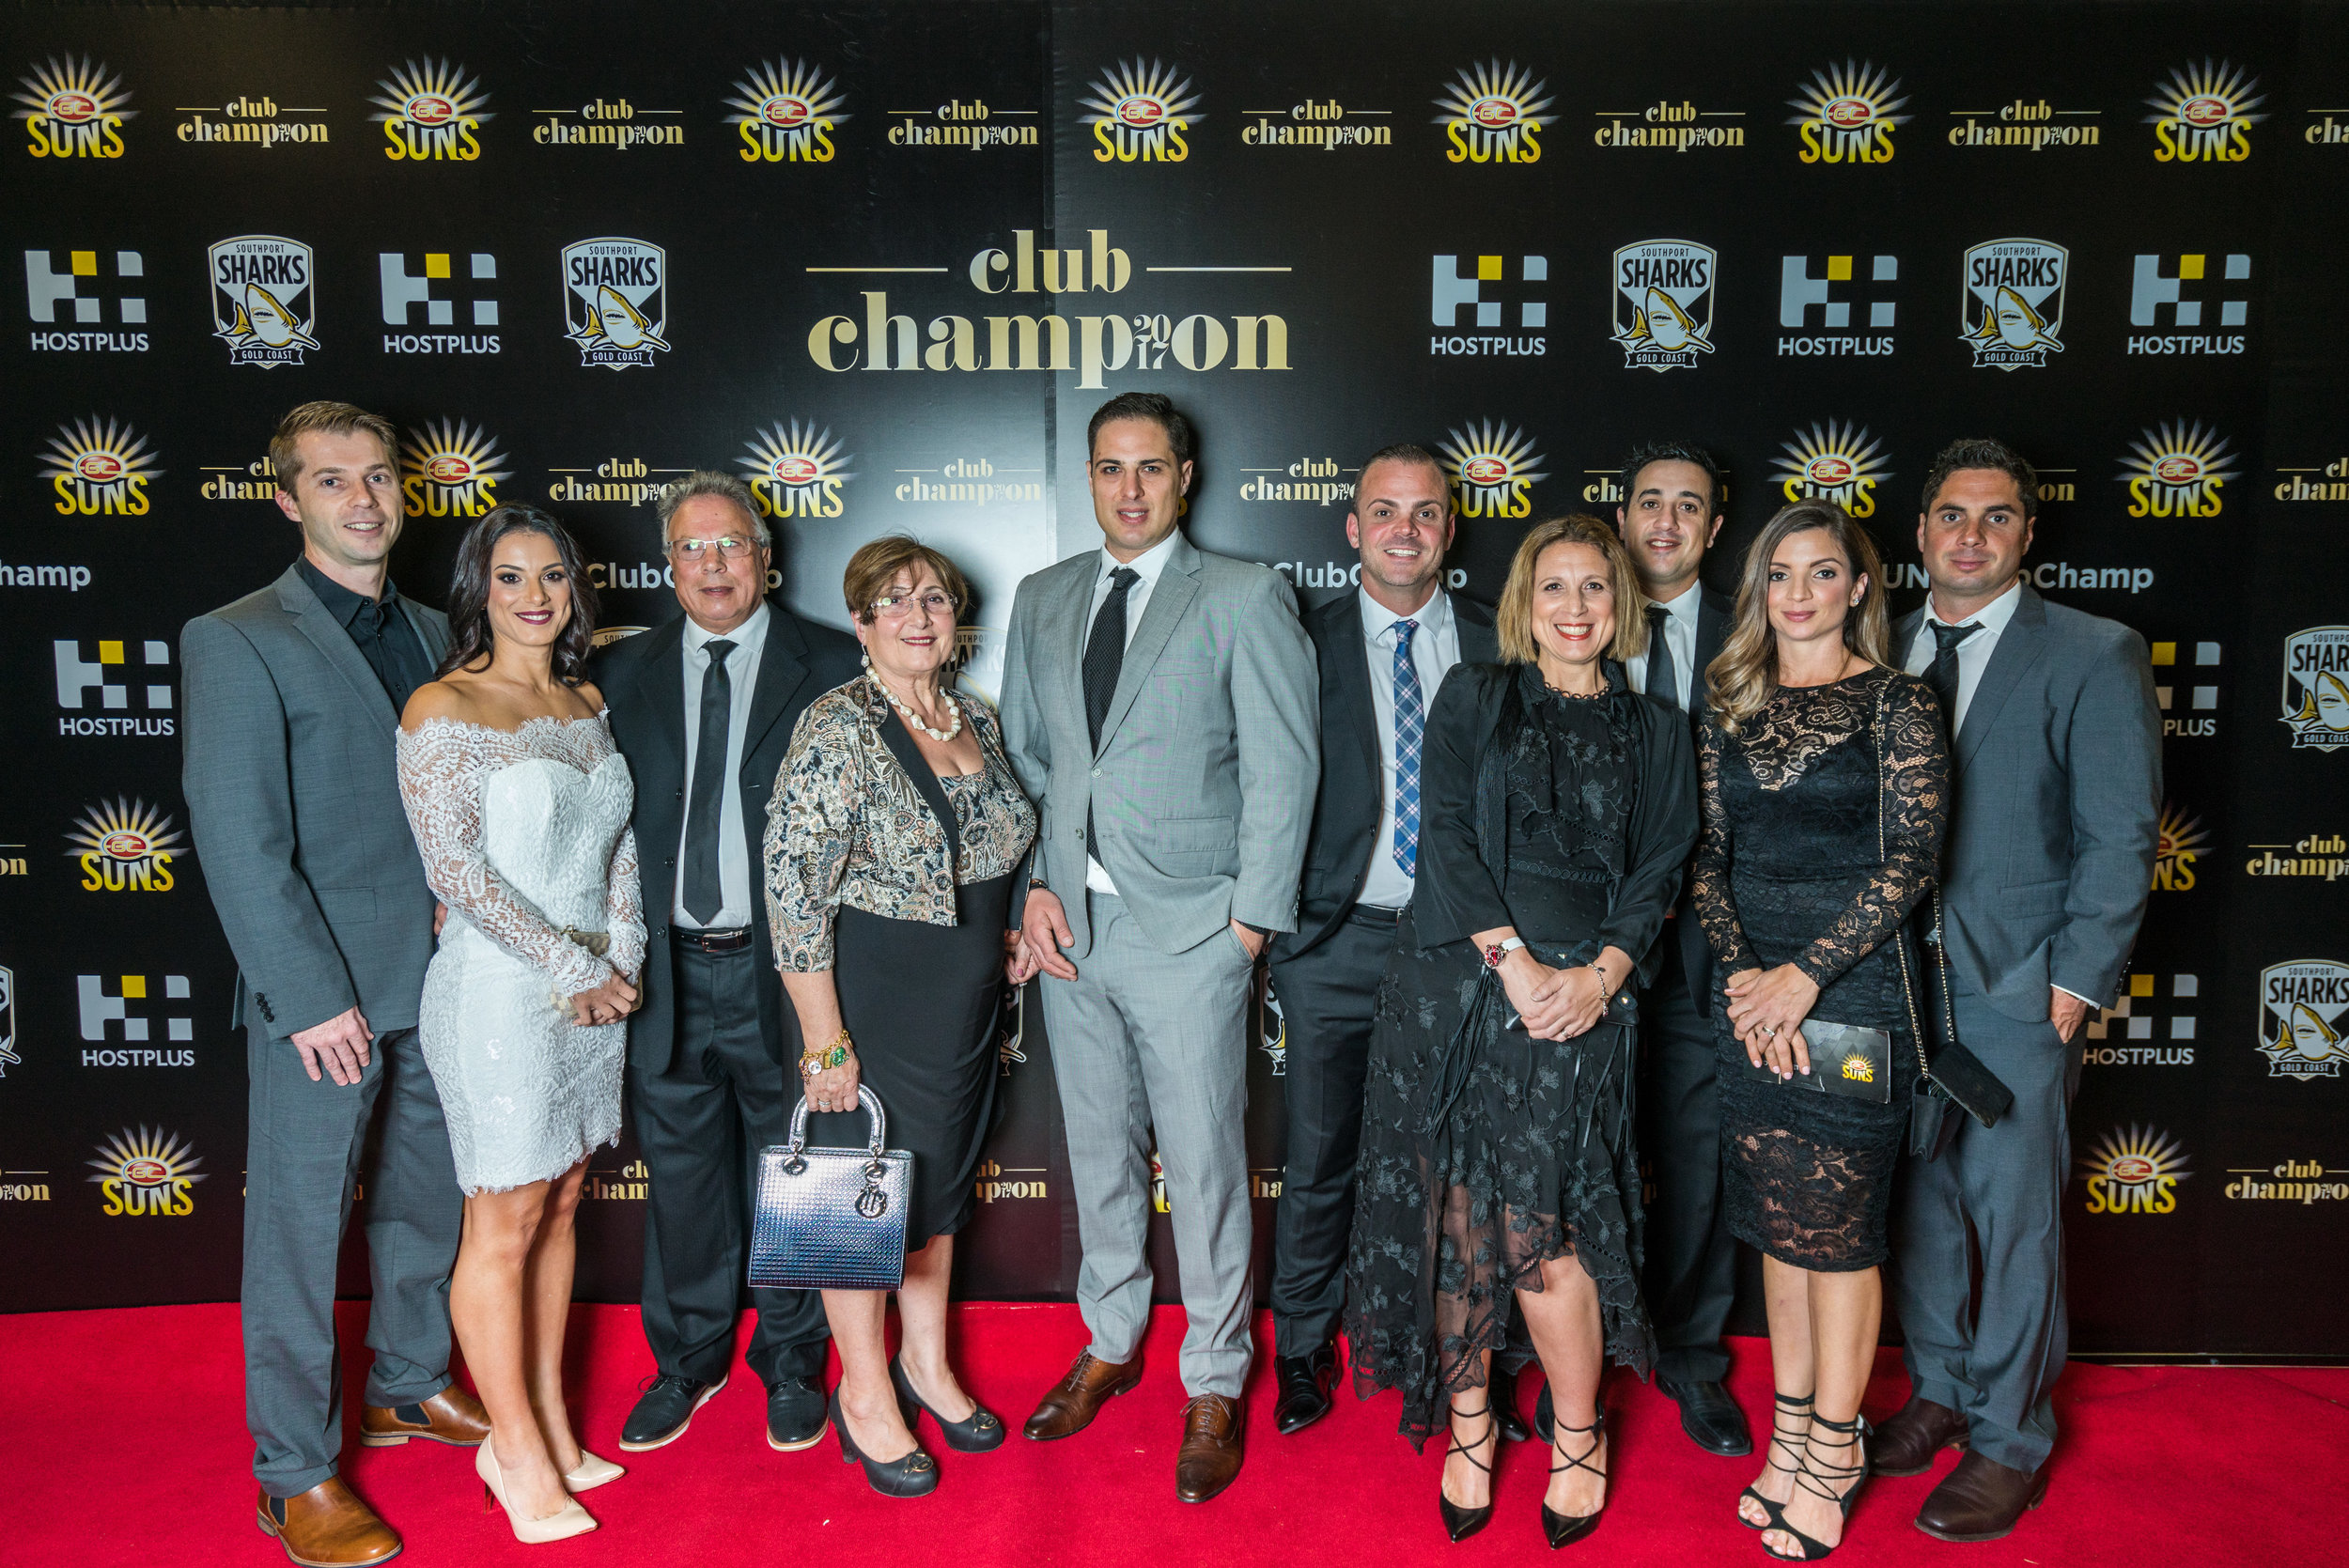 Gold Coast Suns Club Champion taken by Alex May